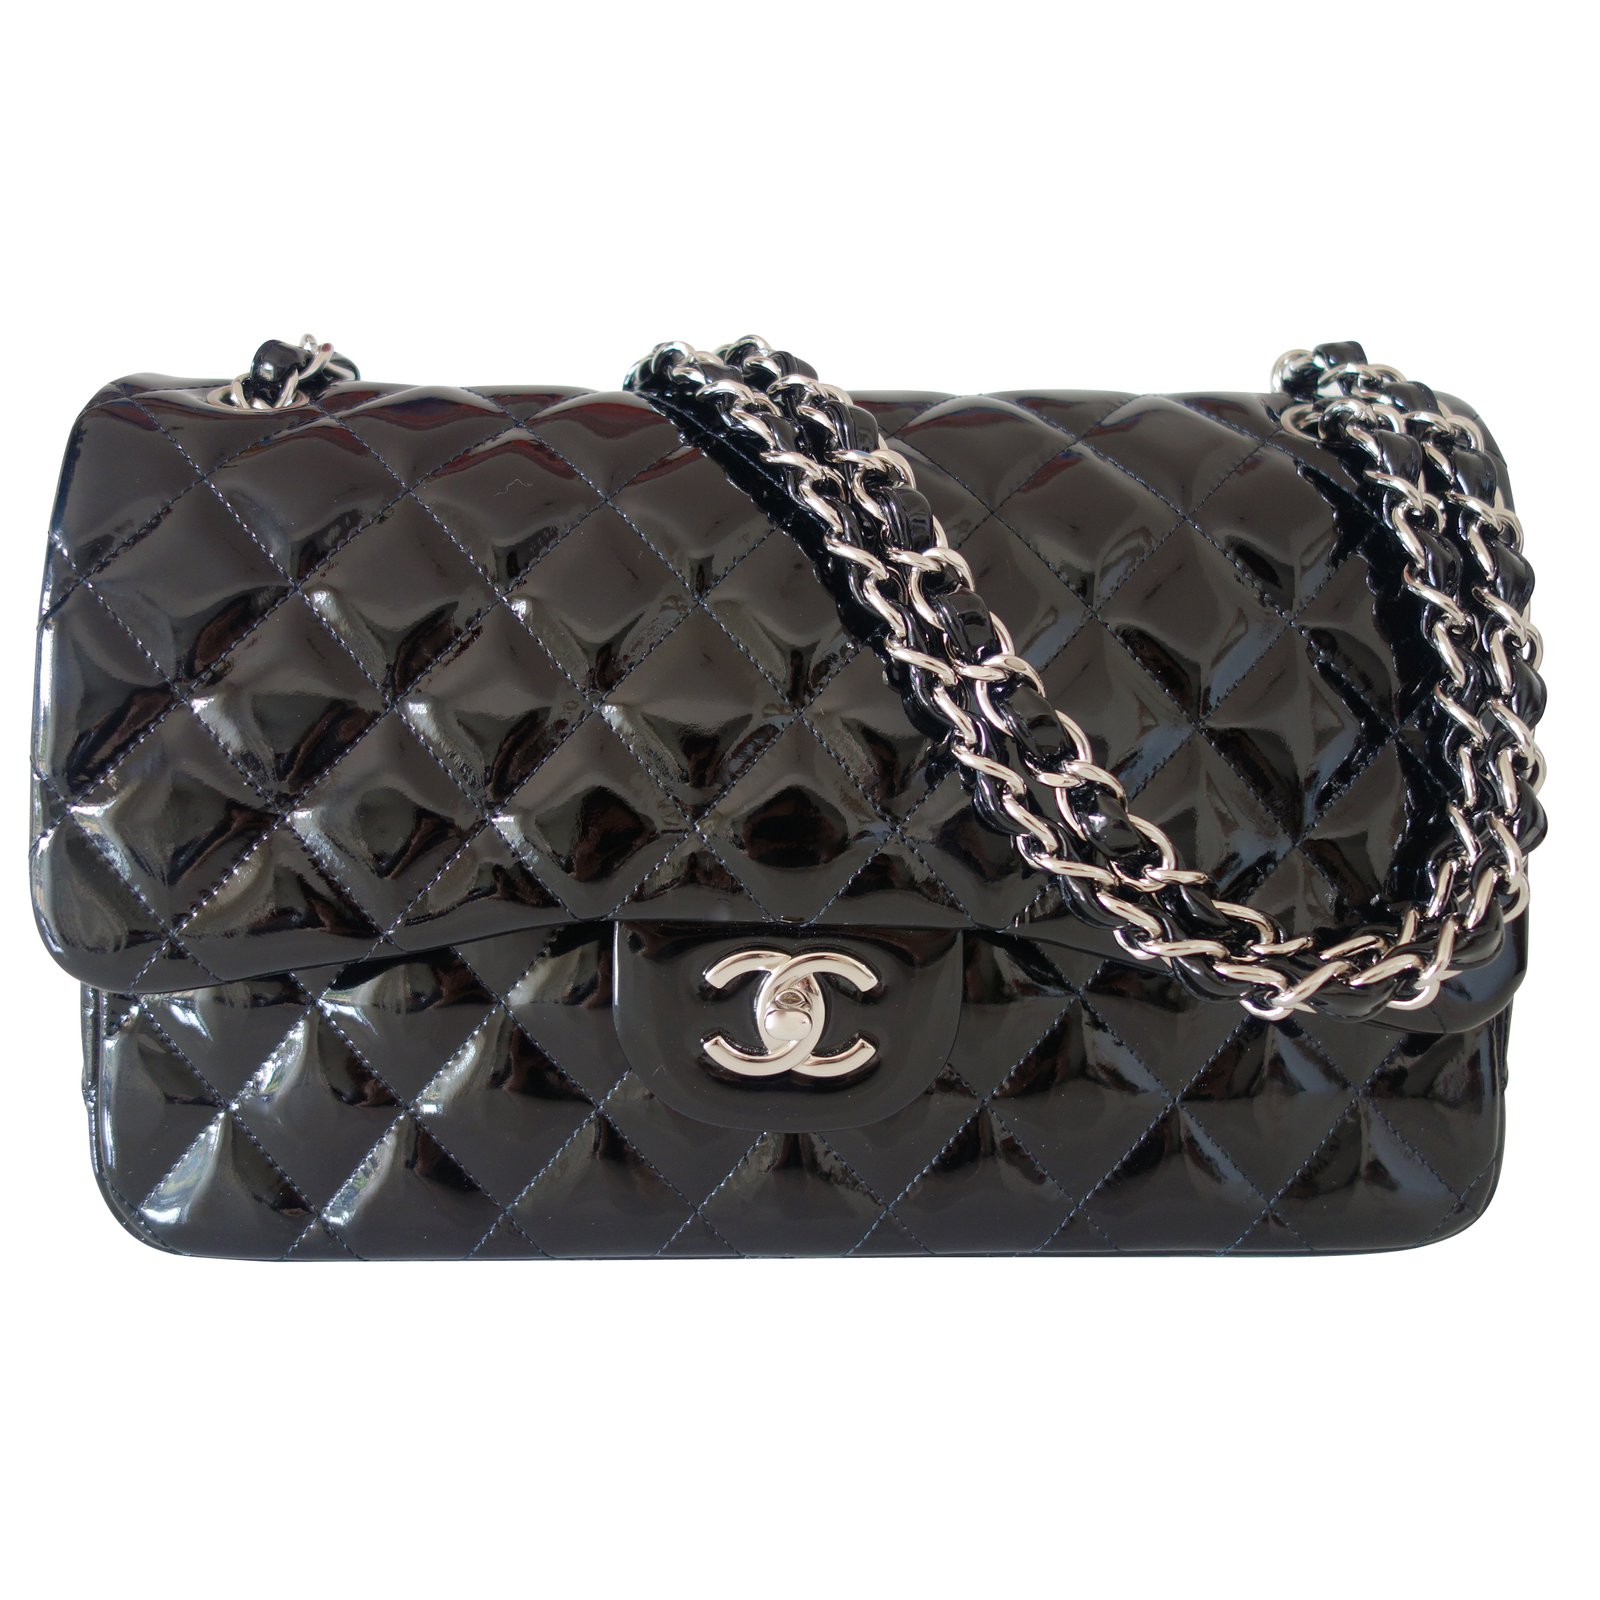 Sacs main chanel timeless cuir vernis noir for Sac chanel interieur